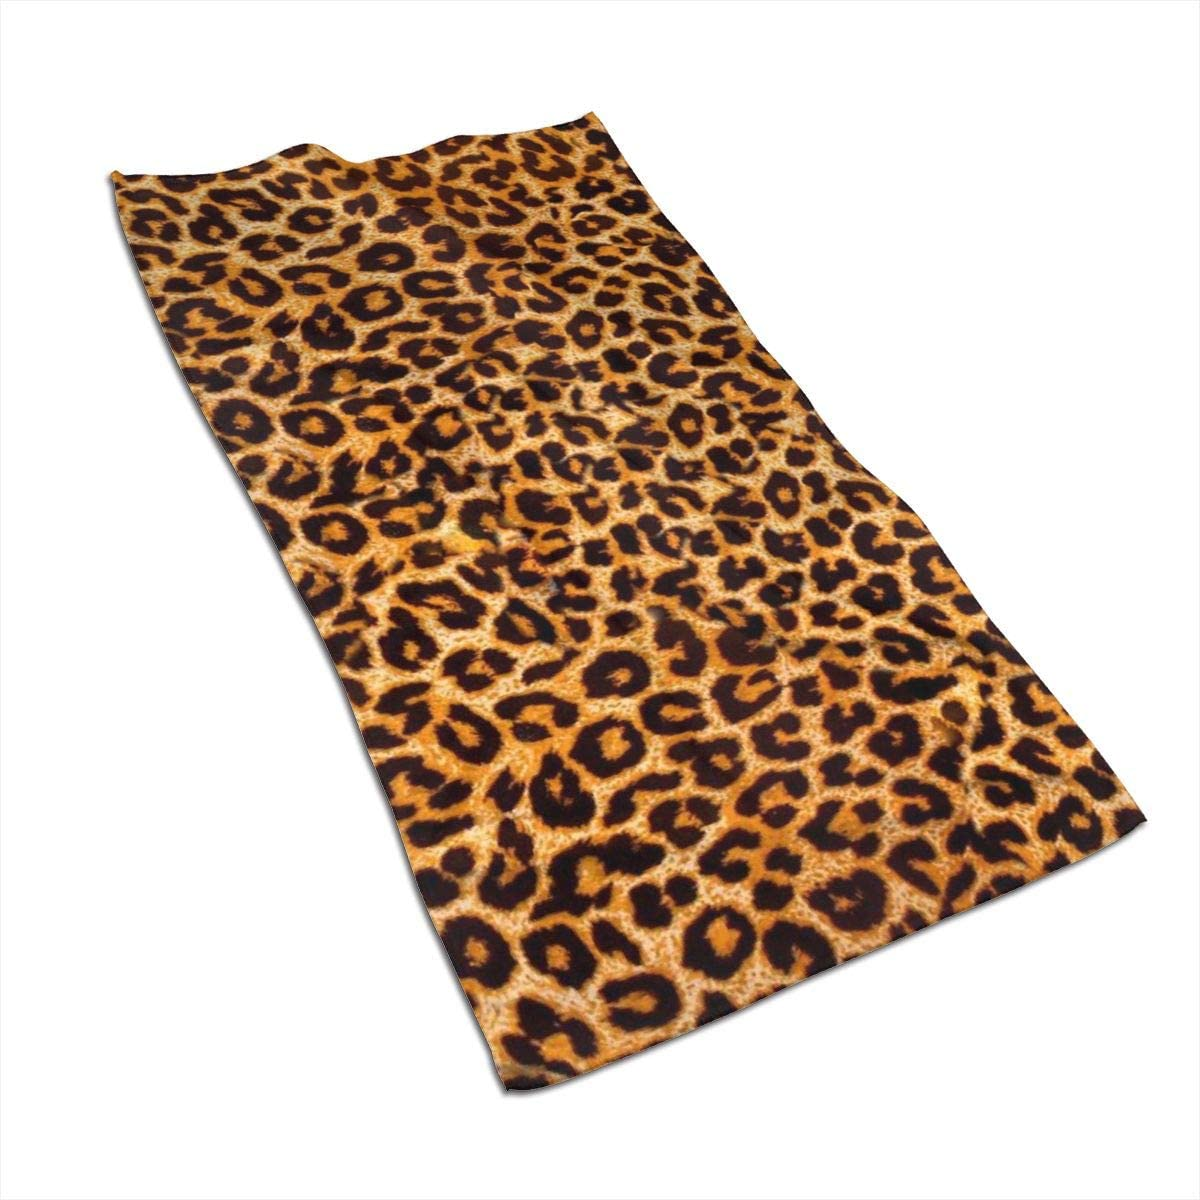 antcreptson Leopard Print 15.727.5 Inch Ultra Absorbent Quick Dry Soft Towels for Bathroom, Hotel and Spa Quality